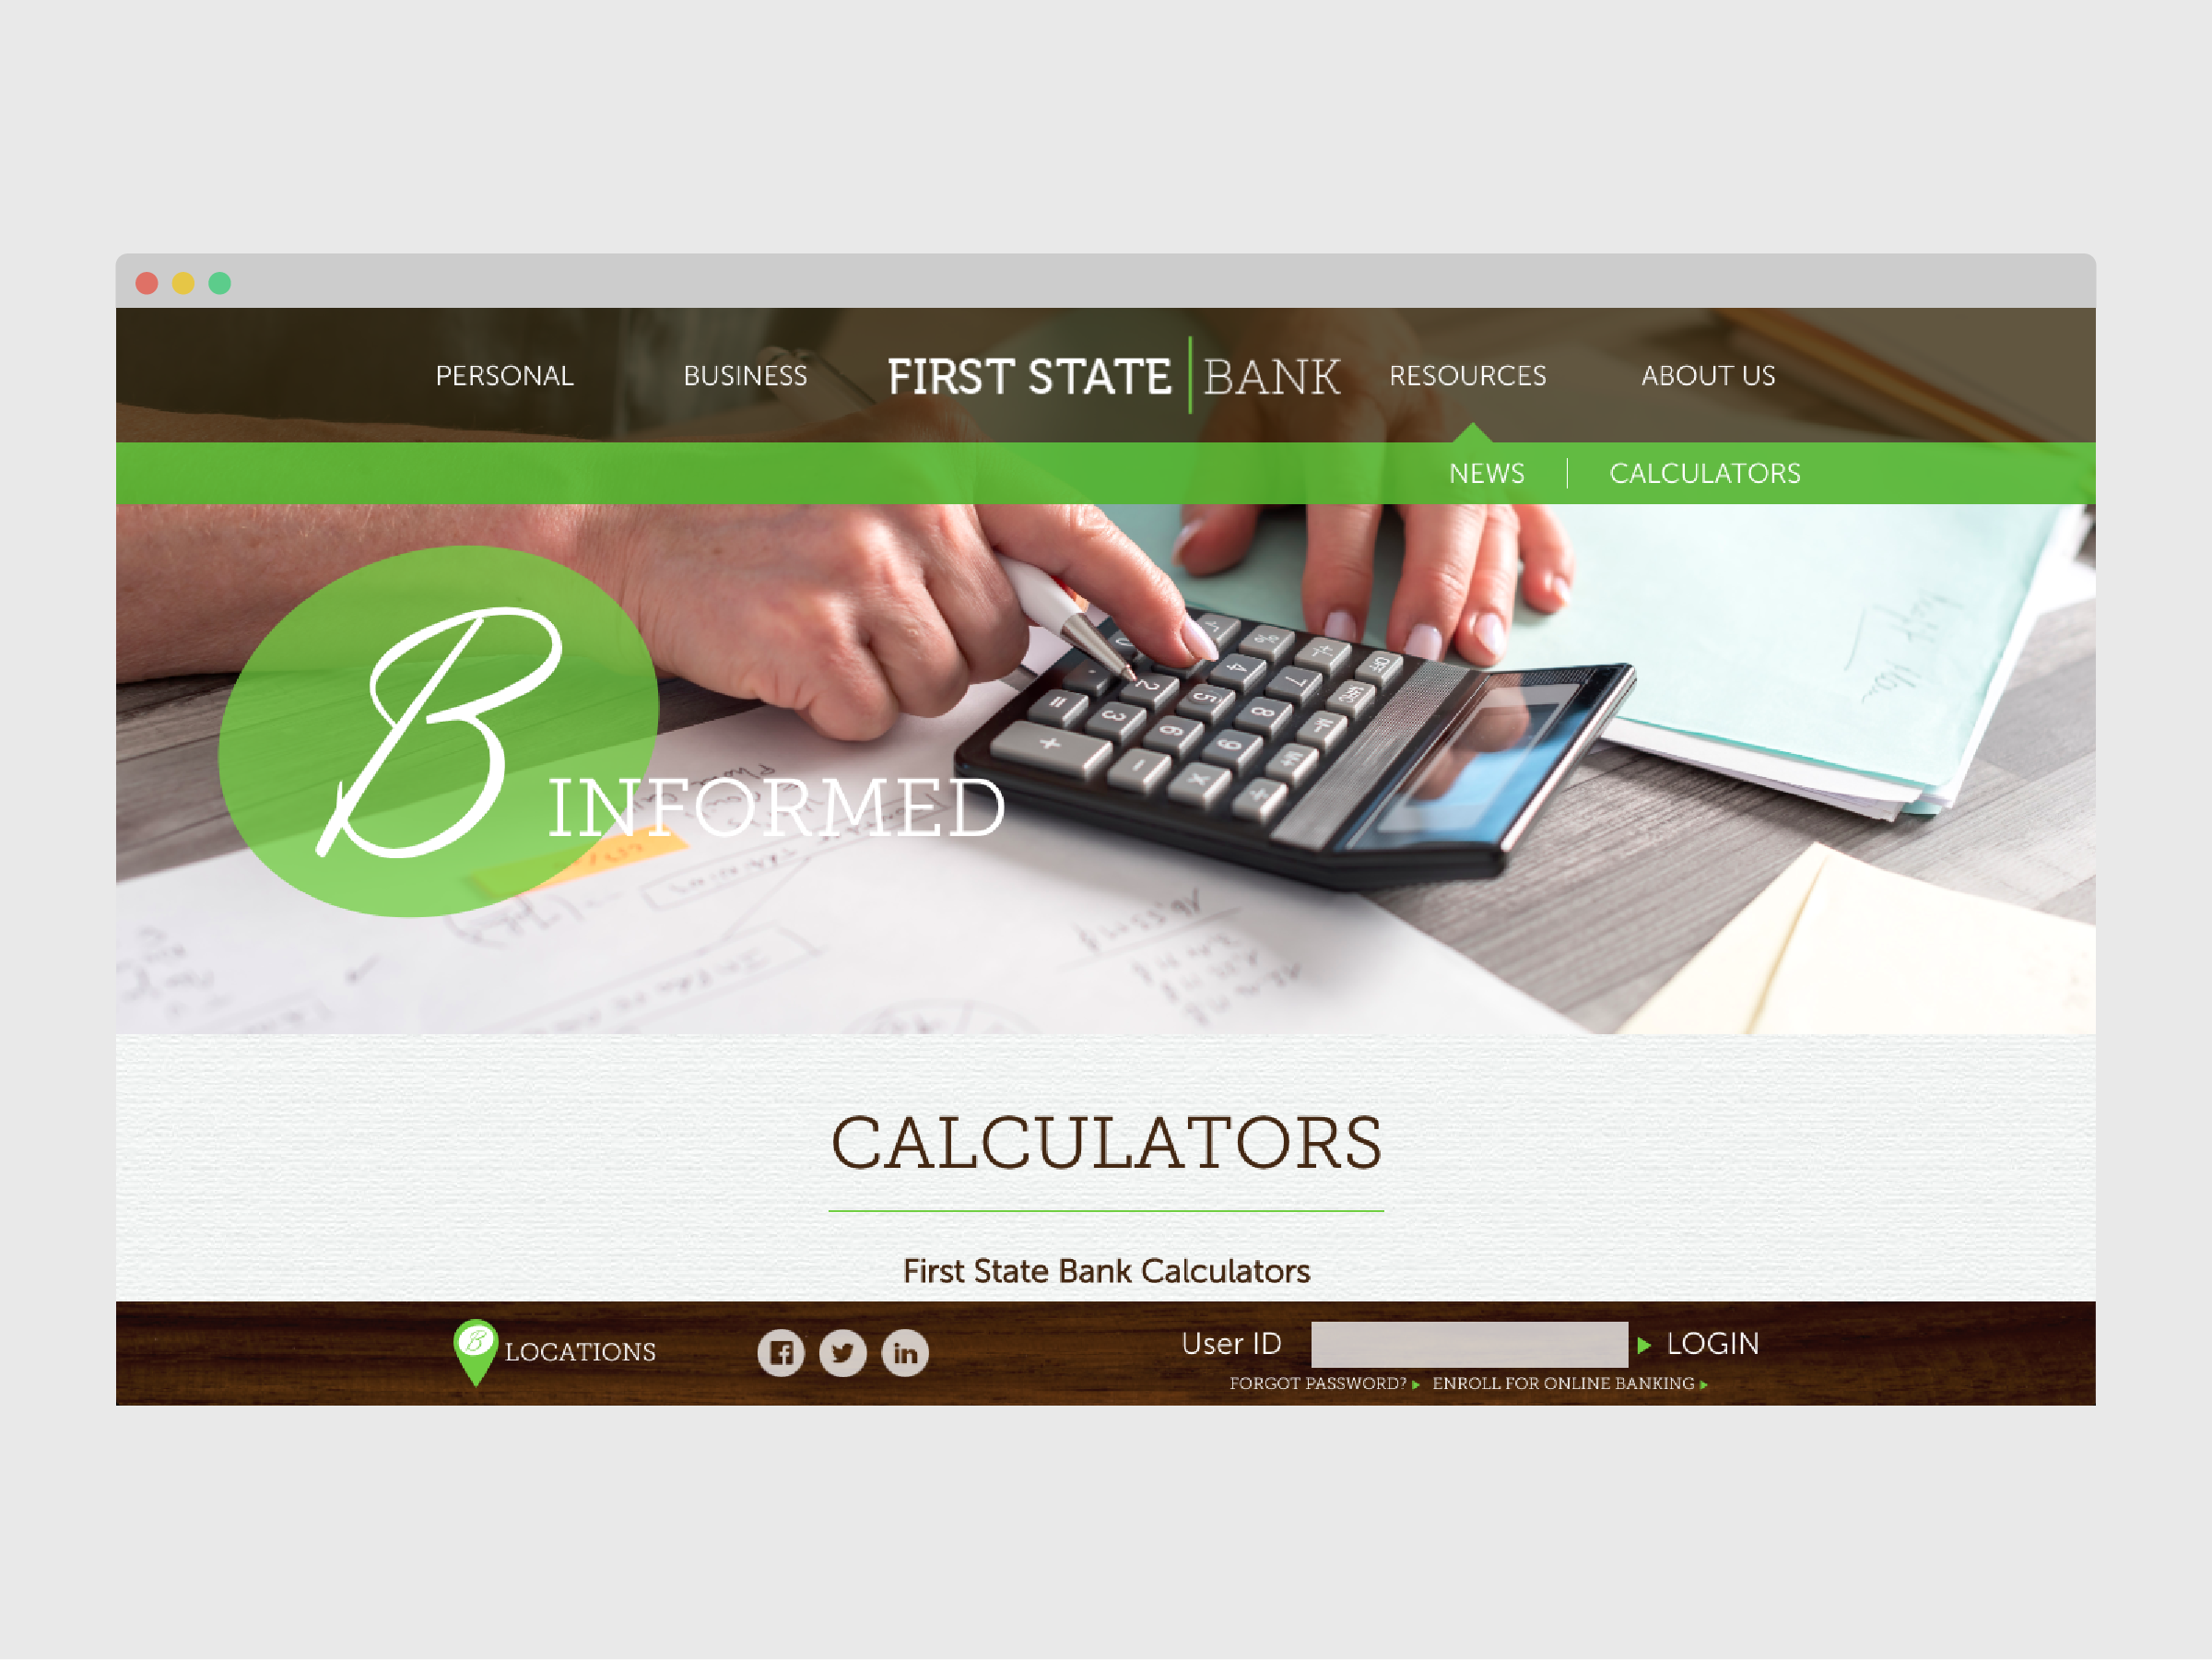 First State Bank financial calculators